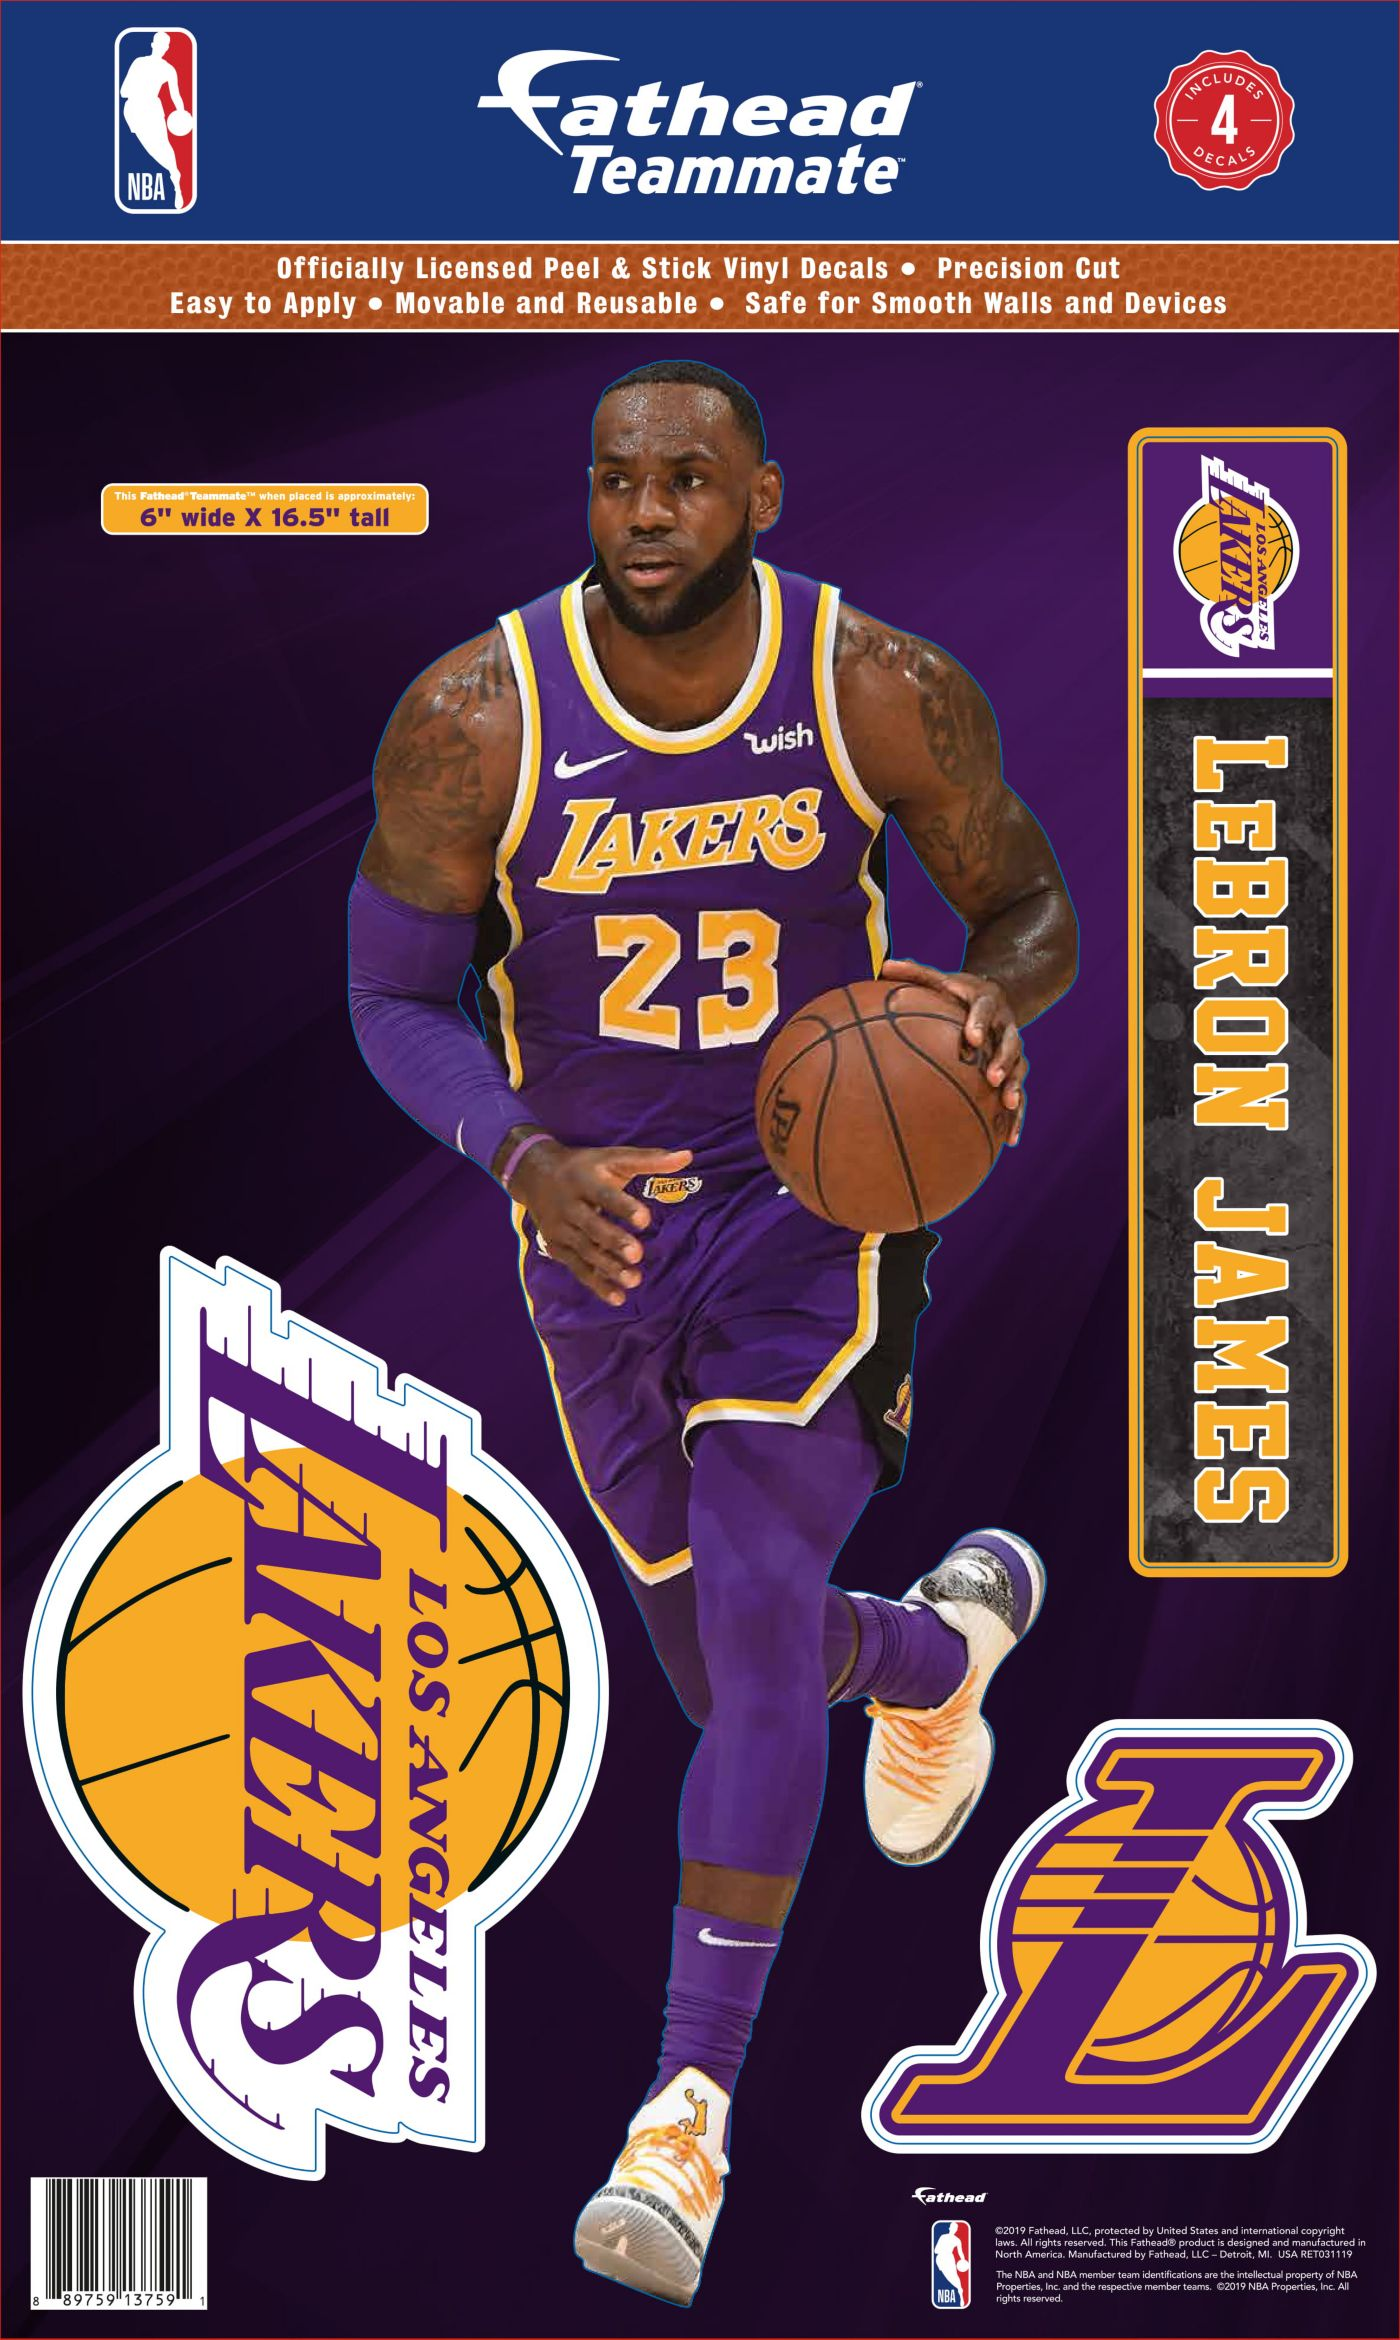 Fathead Los Angeles Lakers LeBron James Teammate Wall Decal